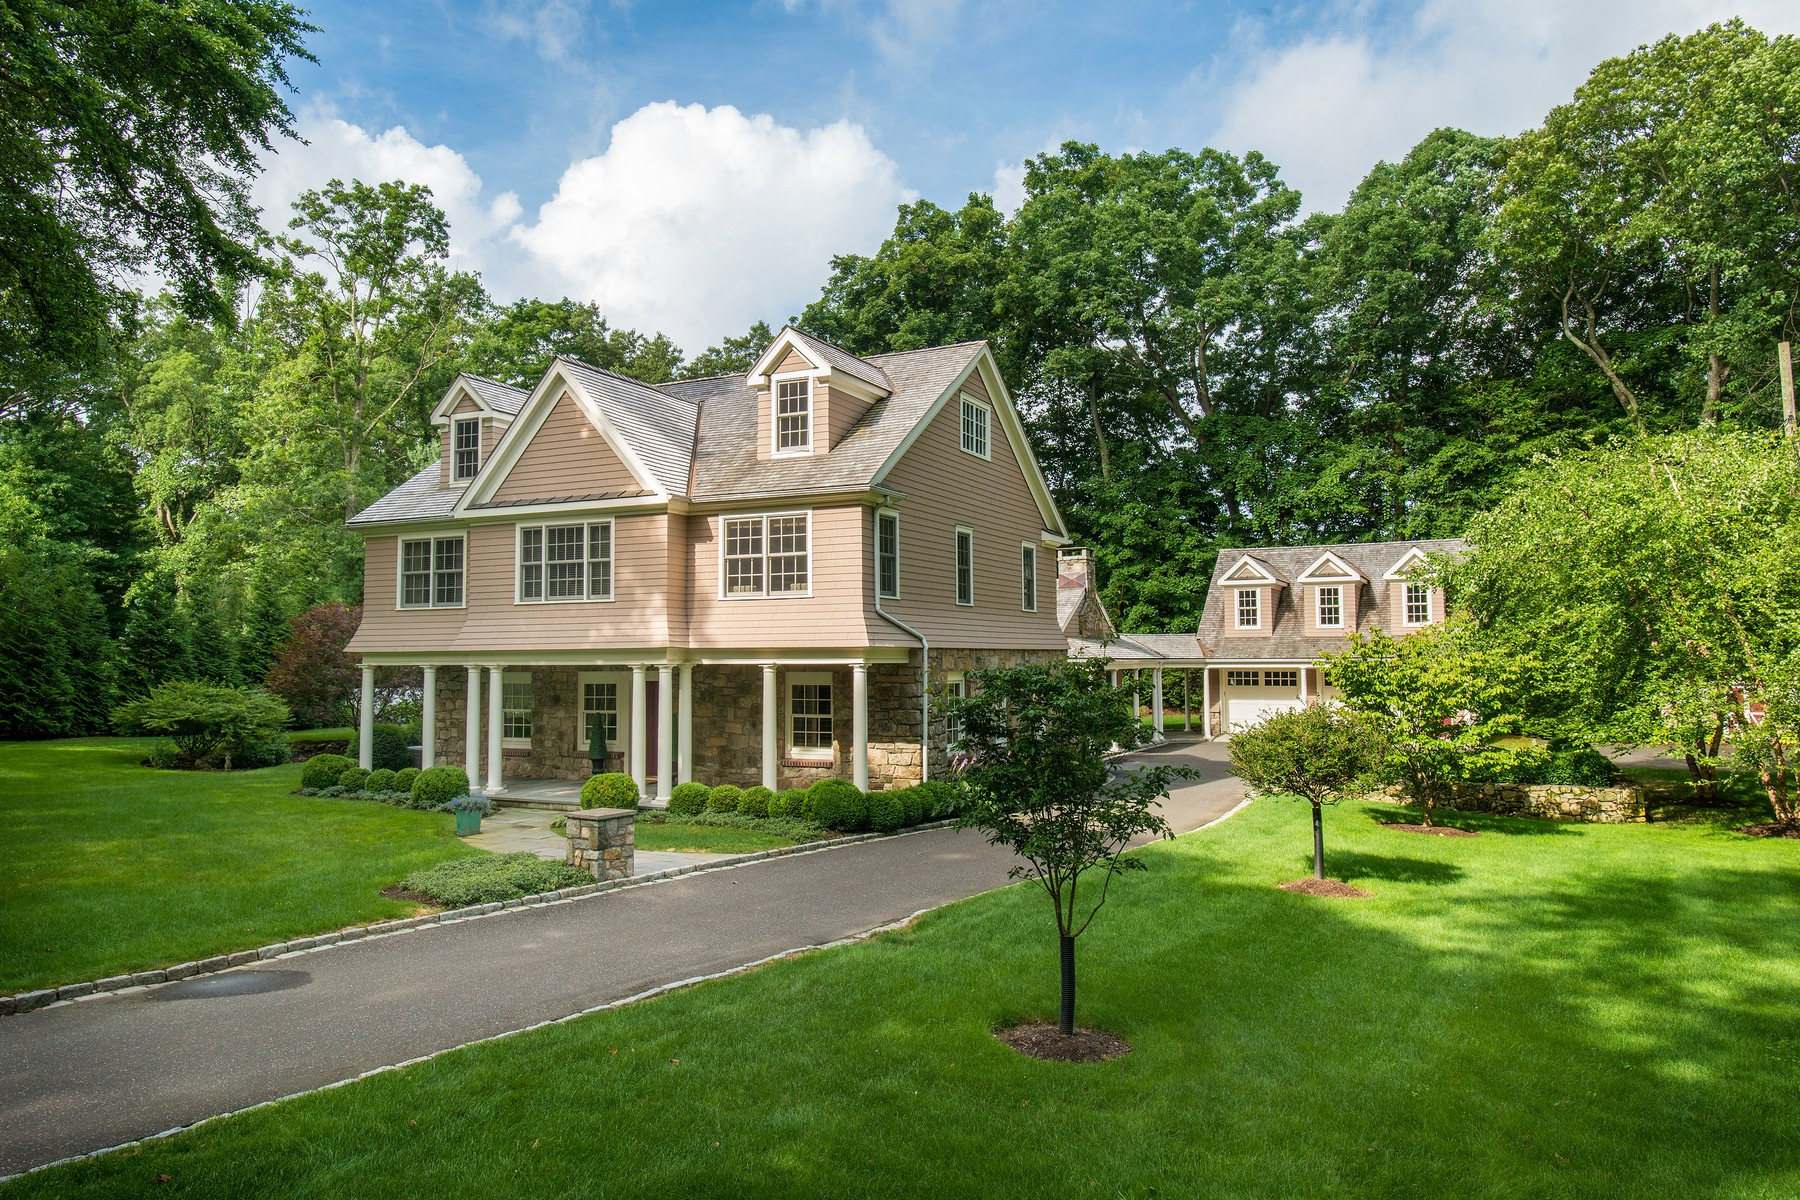 Casa unifamiliar en venta en/de 19 Westview Lane, Norwalk, Connecticut ,06854  , EUA